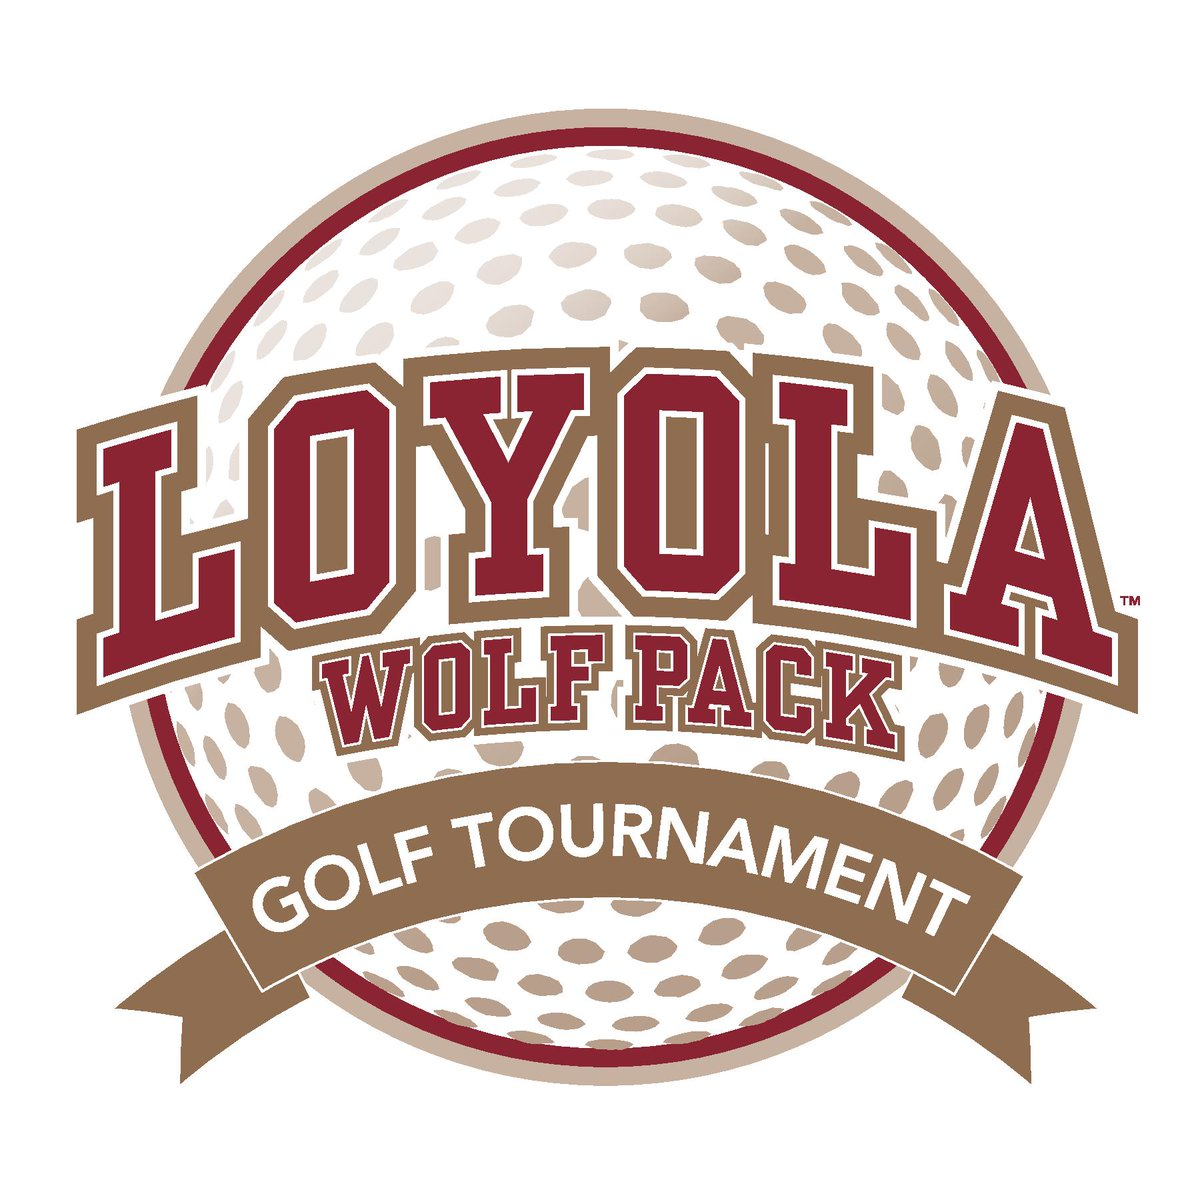 reputable site 6ccba 3a348 LoyolaWolfPack/Wolfpackstaff on Twitter